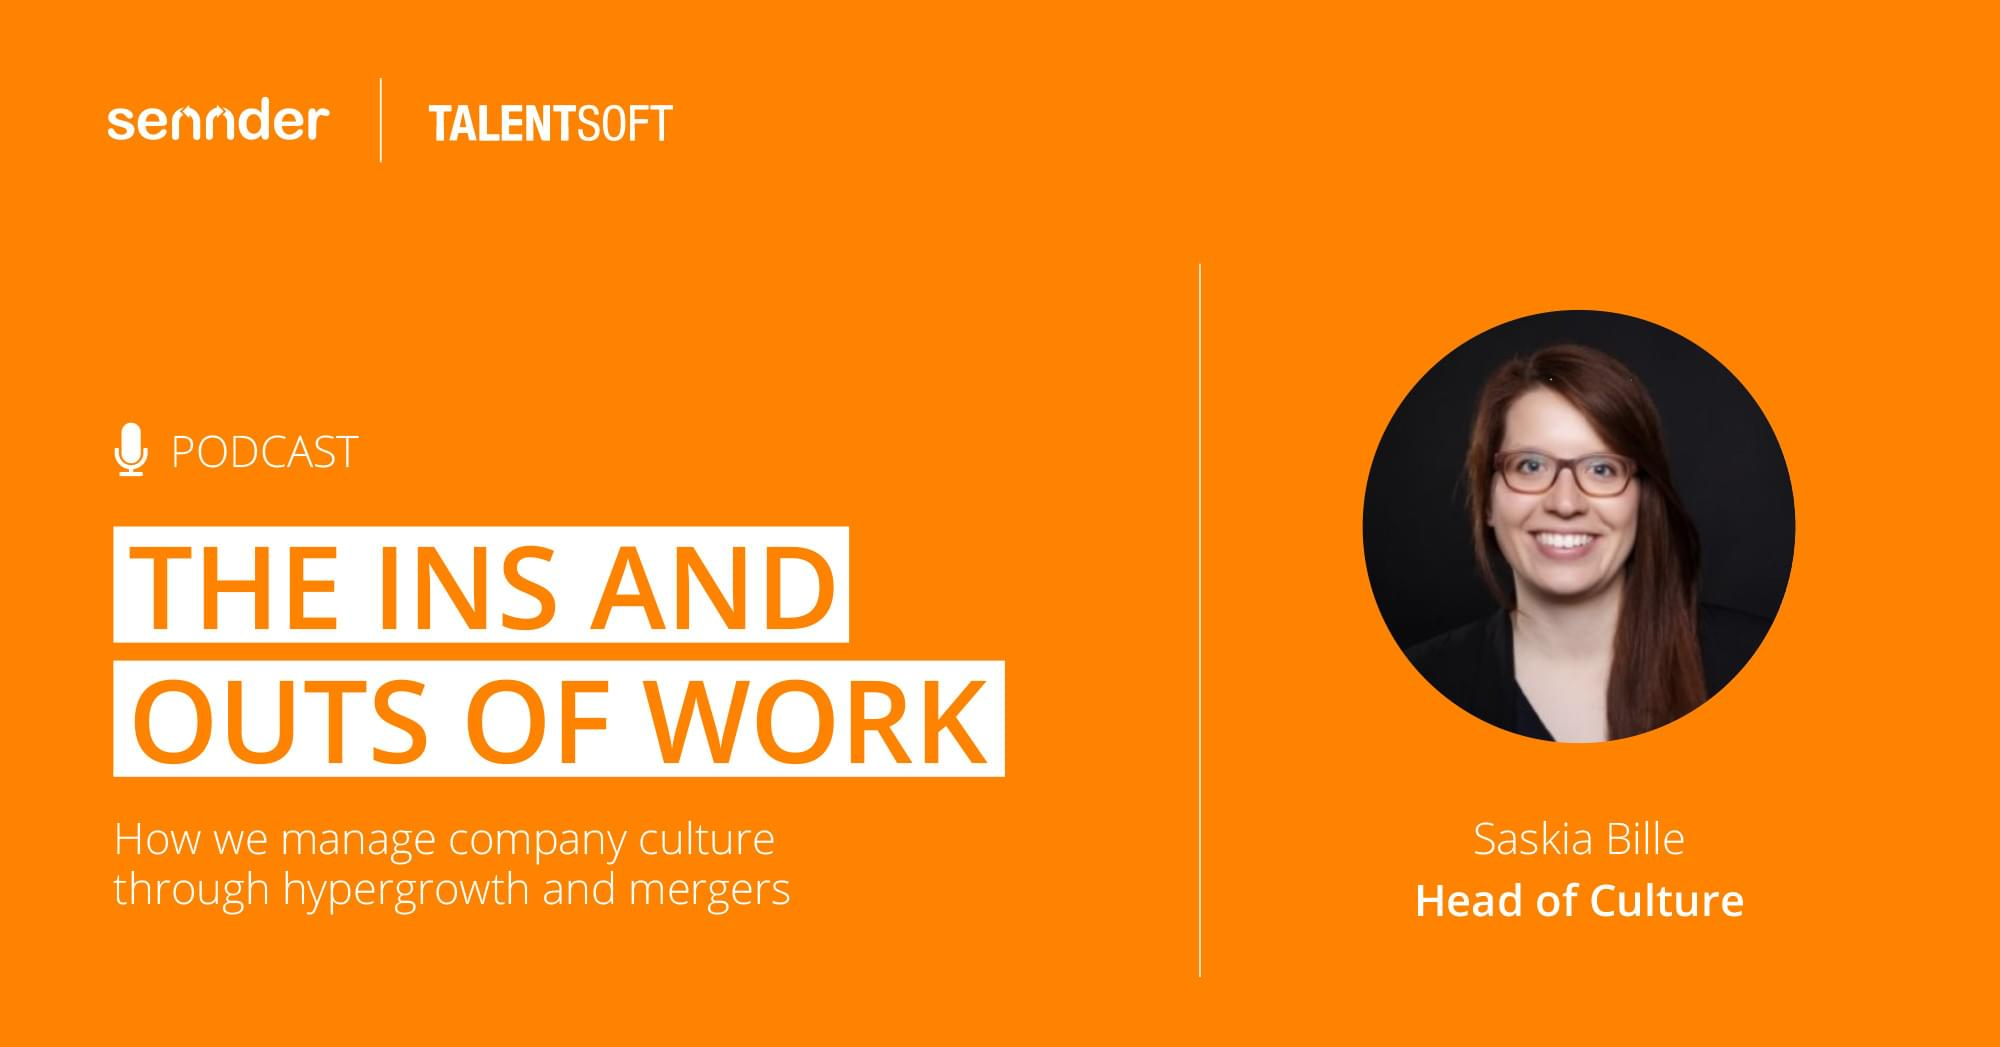 How we manage company culture through hypergrowth and mergers